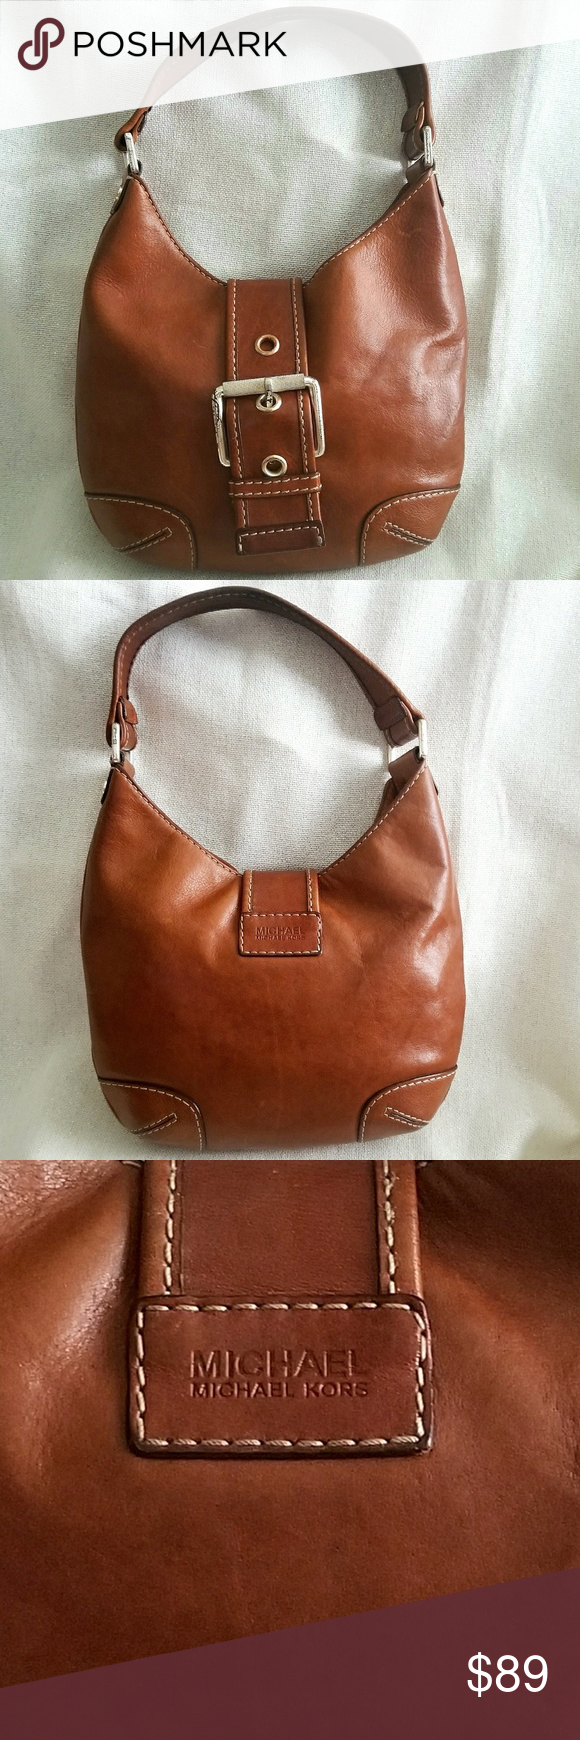 0e9c57bb0d32 Michael Kors VINTAGE To die for! Michael Kors' handbag designs are CLASSIC  and the